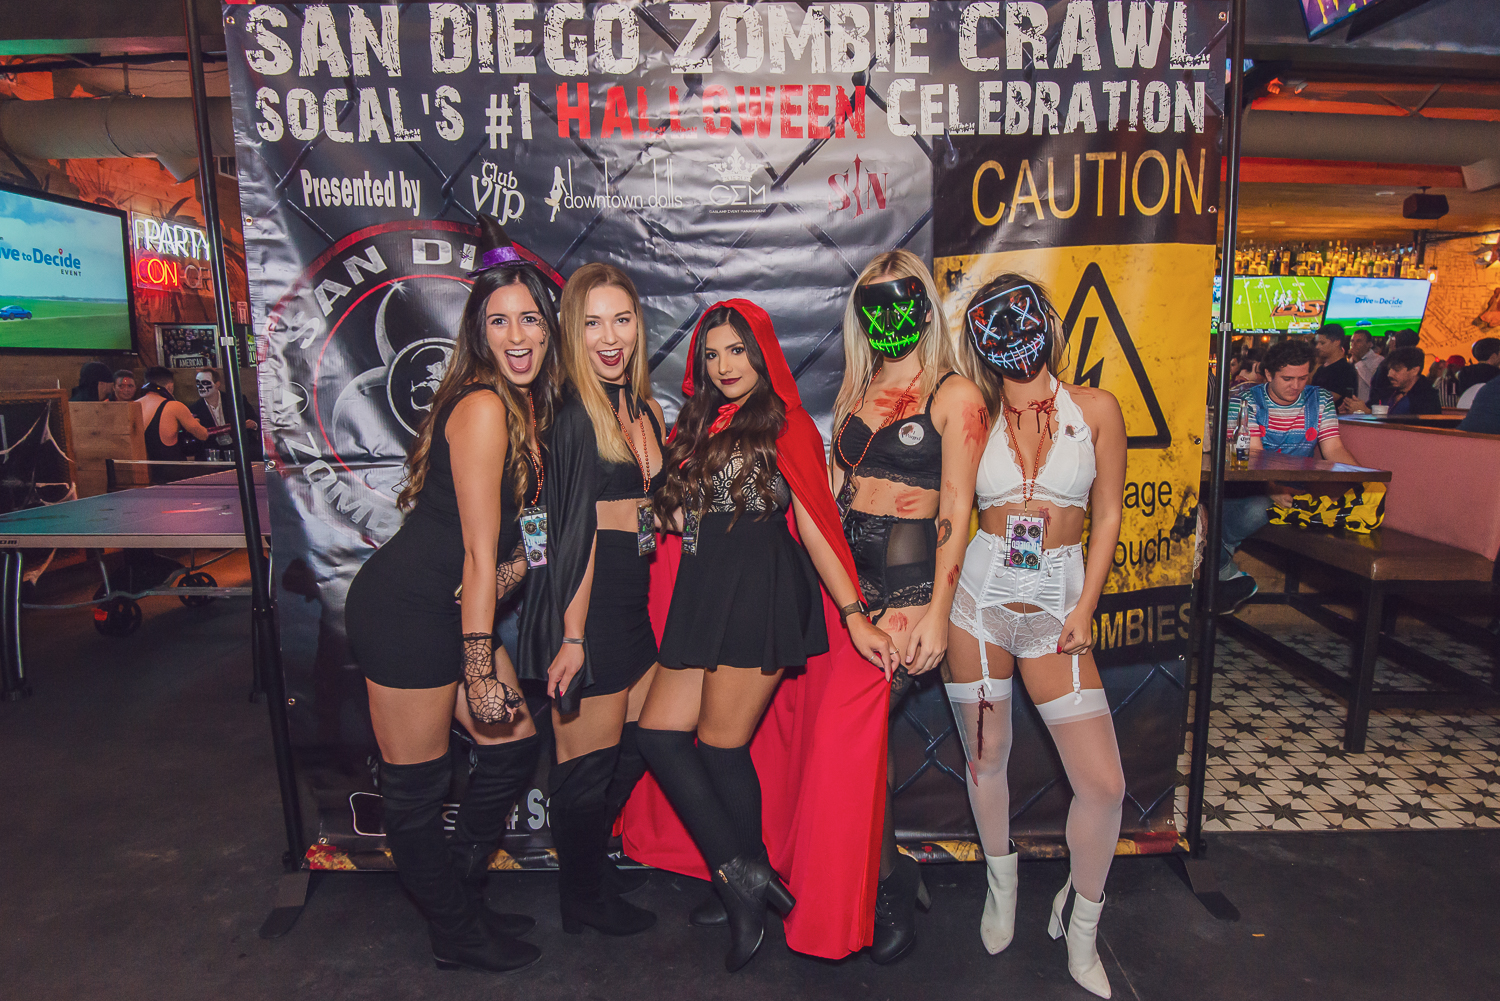 San Diego Zombie Crawl Meets Day of the Dead